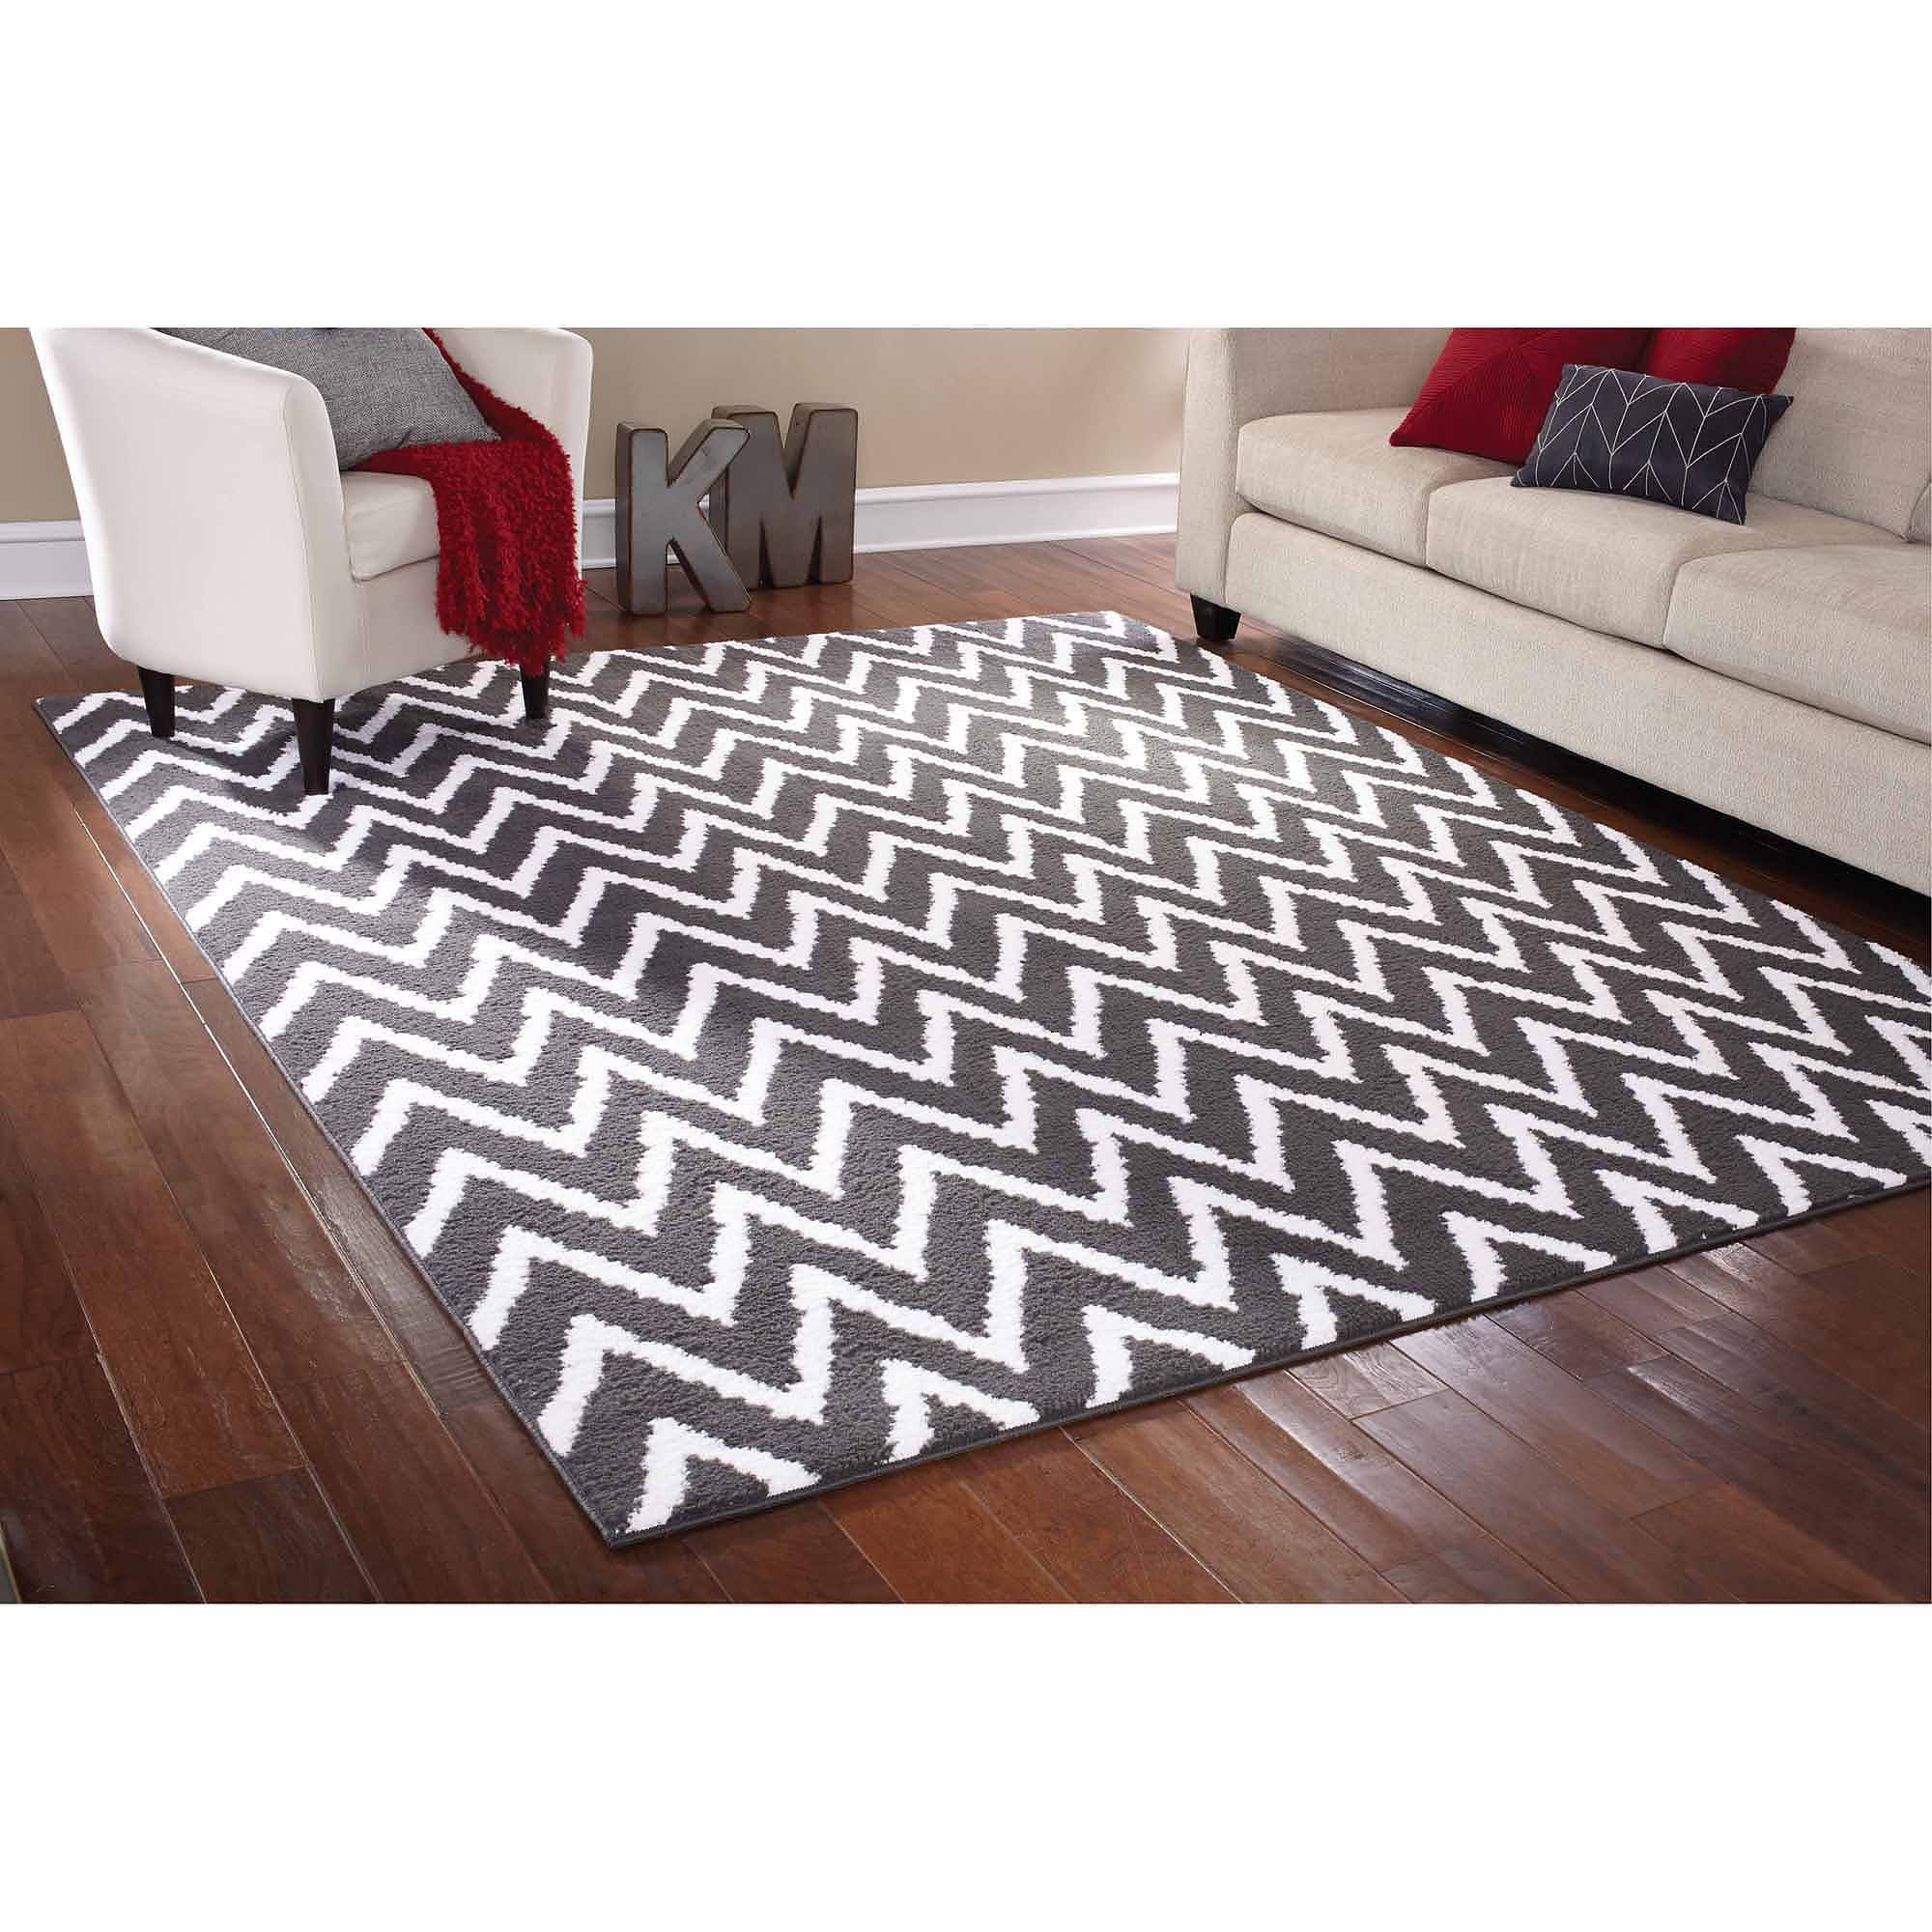 Rug in a Bag Distressed Zig Zag Cinder